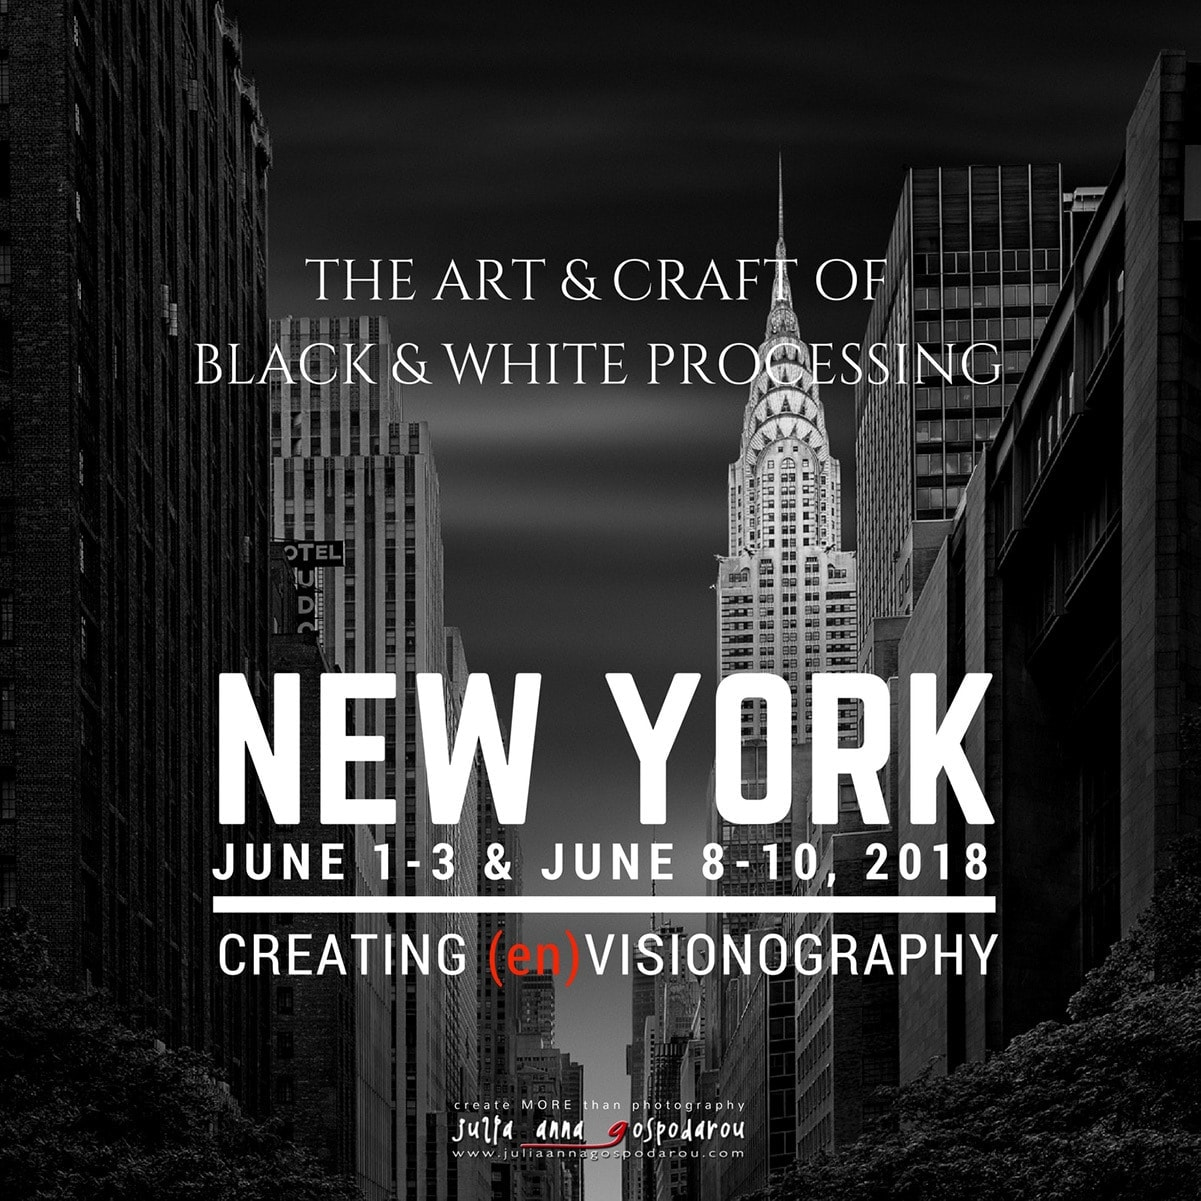 New York 2018 workshop black and white photography processing